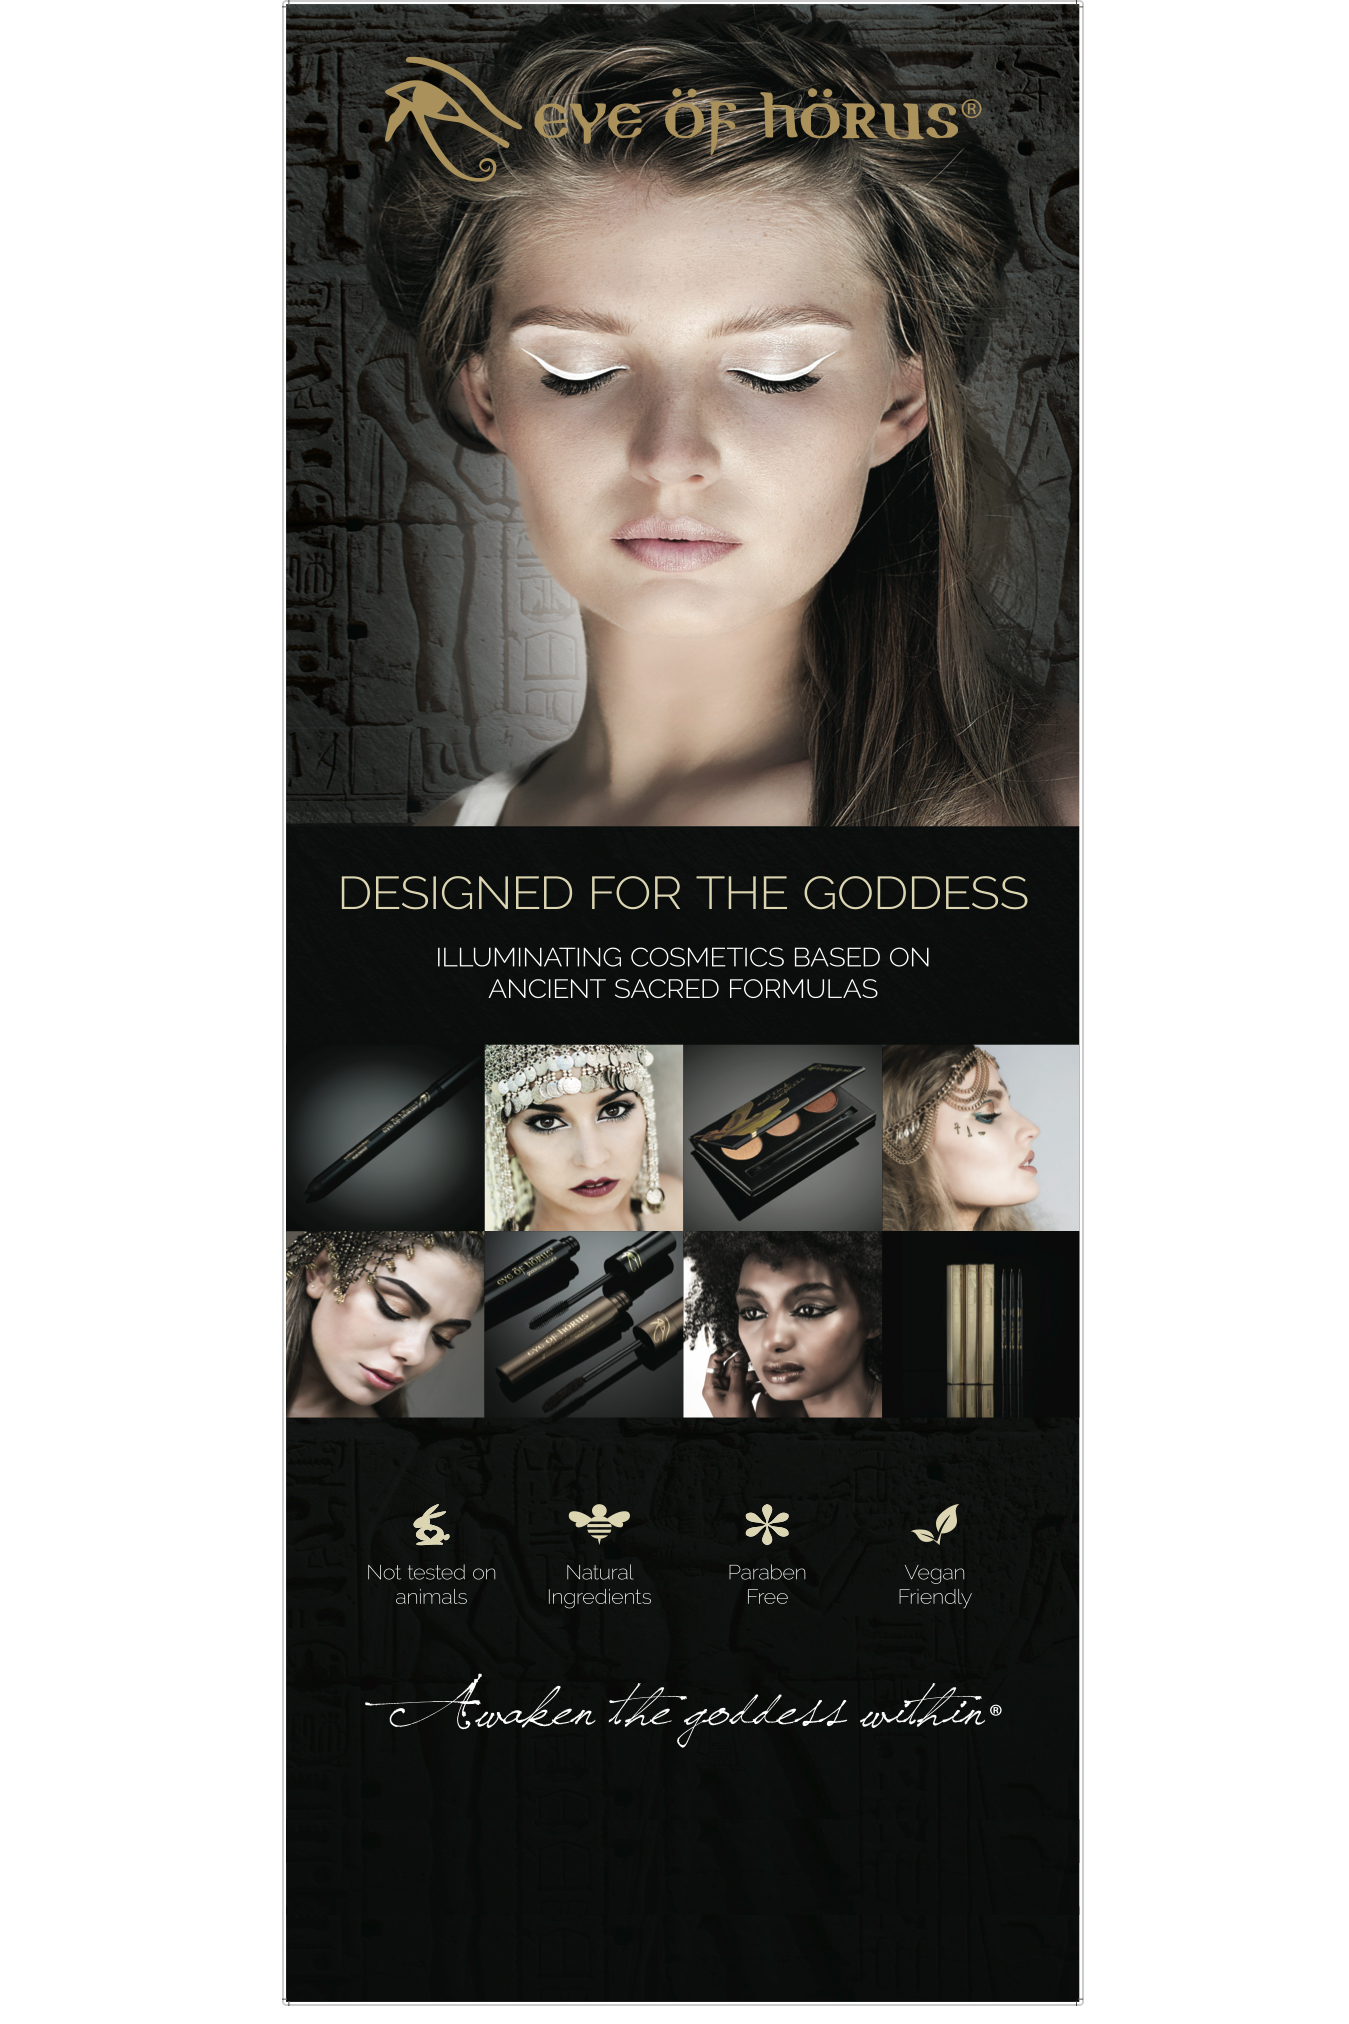 Banners promo graphic for Byron Bay 's top 10 cosmetics